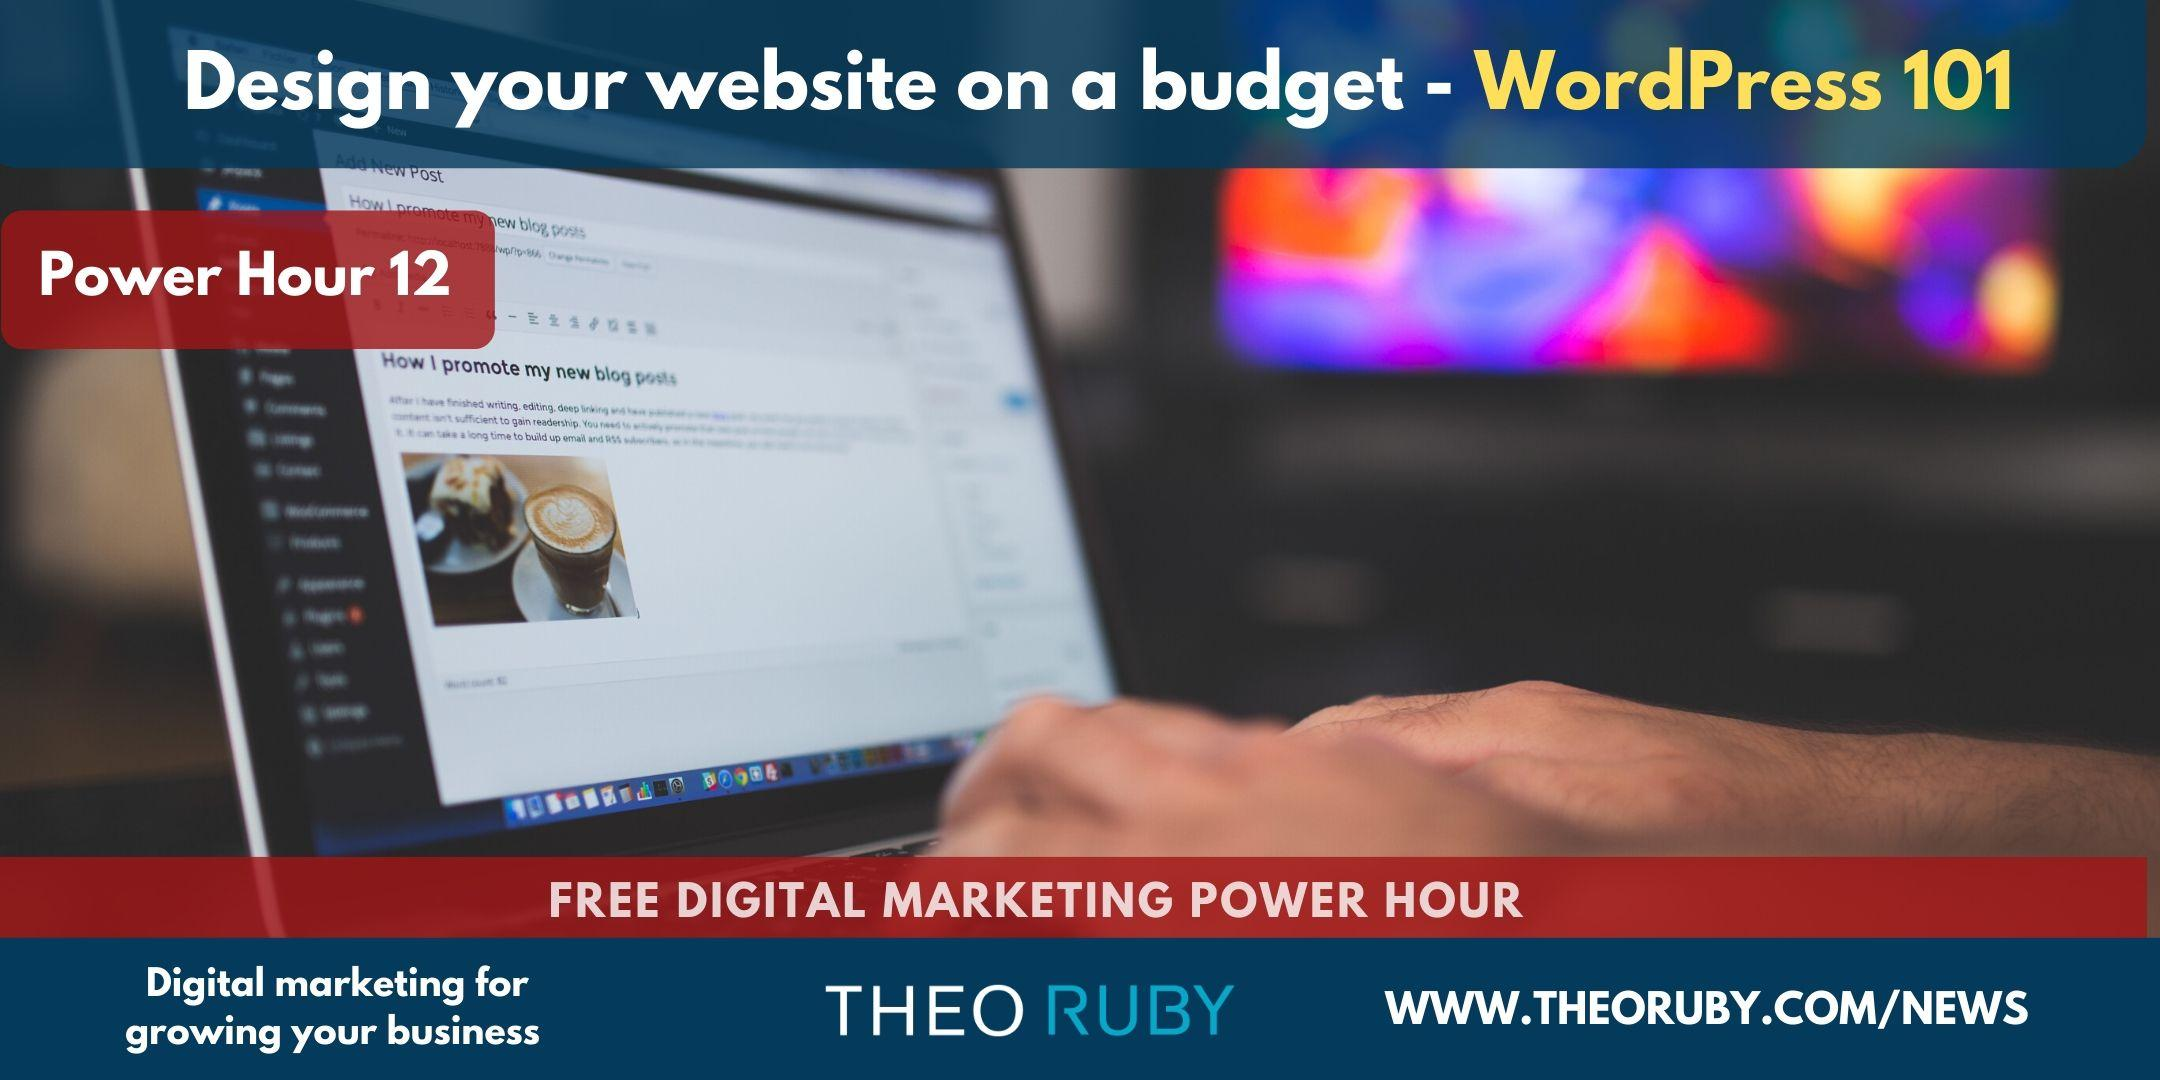 Design your website on a budget - WordPress 101 - Free demo site included 1